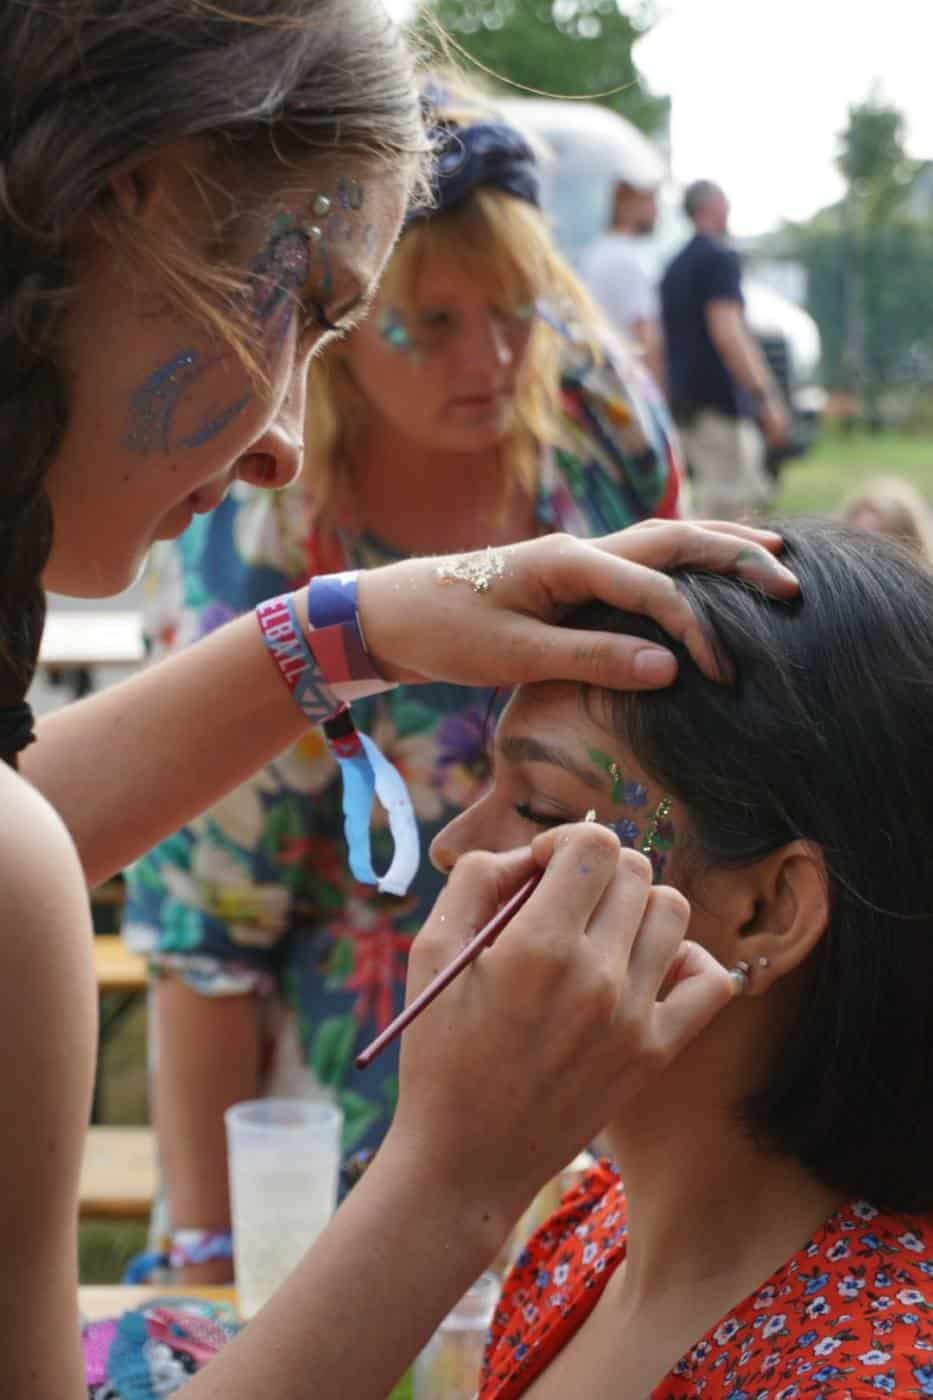 Makeup and feathers at Vogelball Hamburg festival